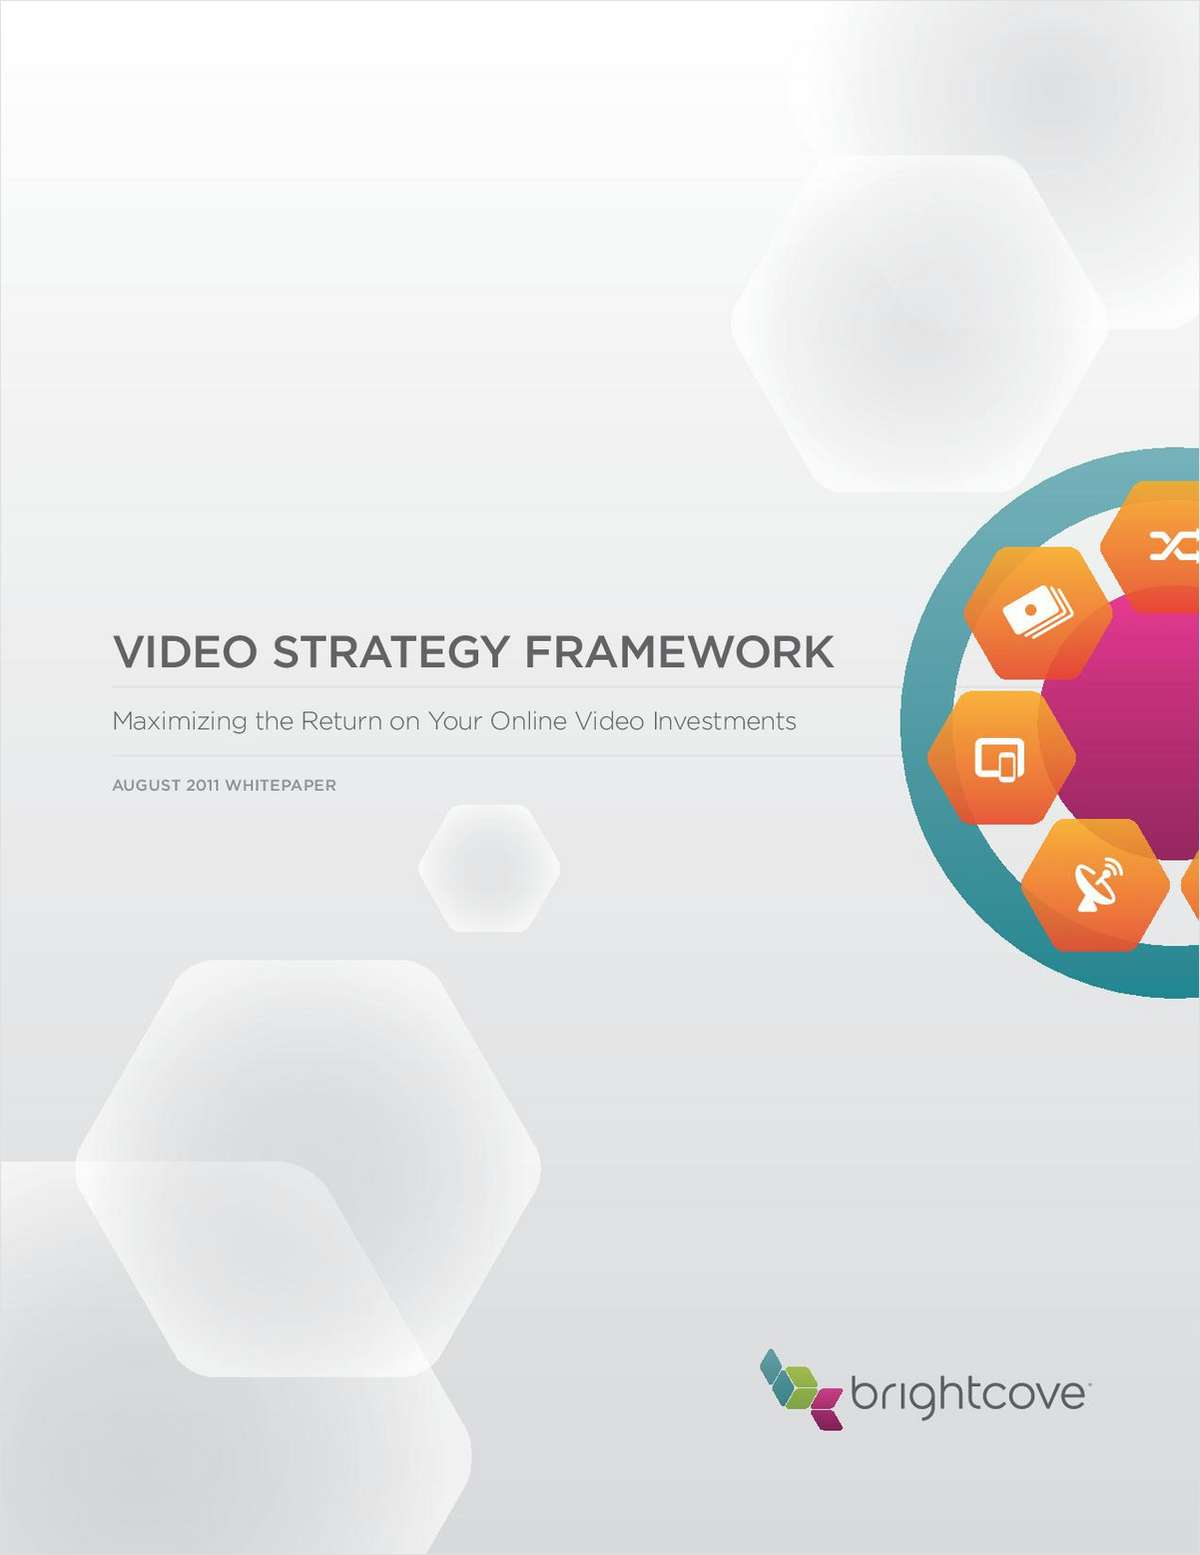 Video Strategy Framework: Maximizing the Return on Your Online Video Investments